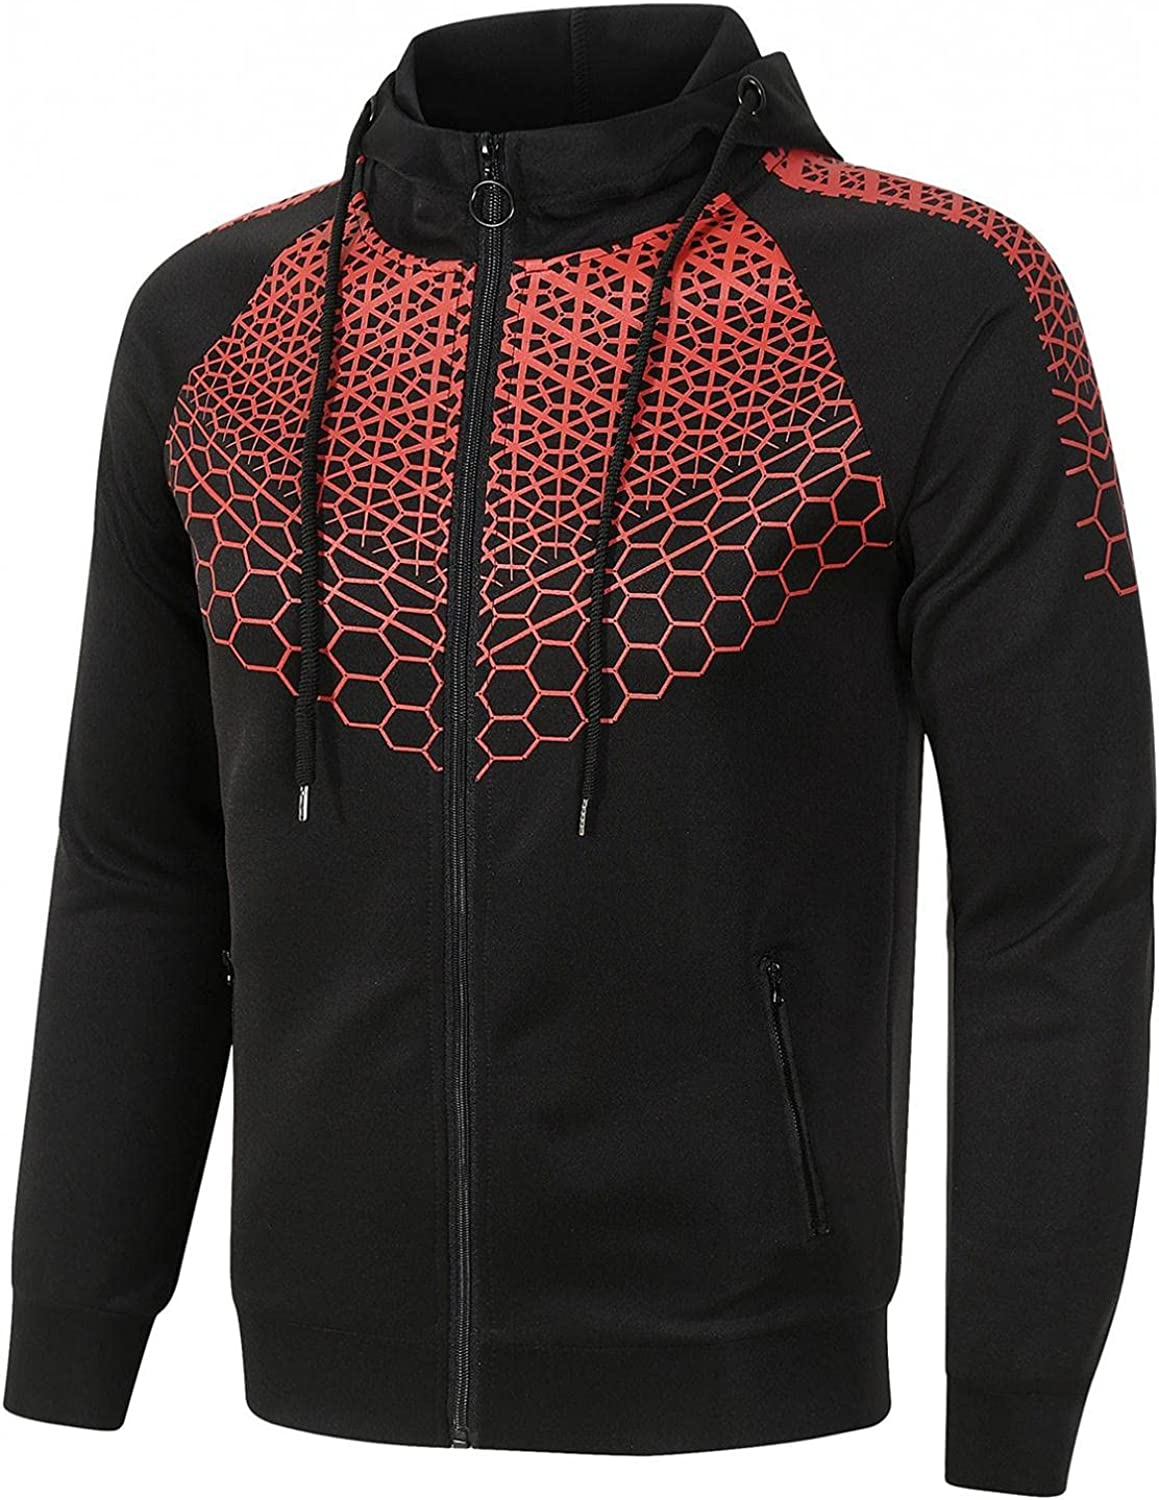 Mens Special sale item Hoodies Zip Up Casual Pullover - New Orleans Mall Li for Men Classic